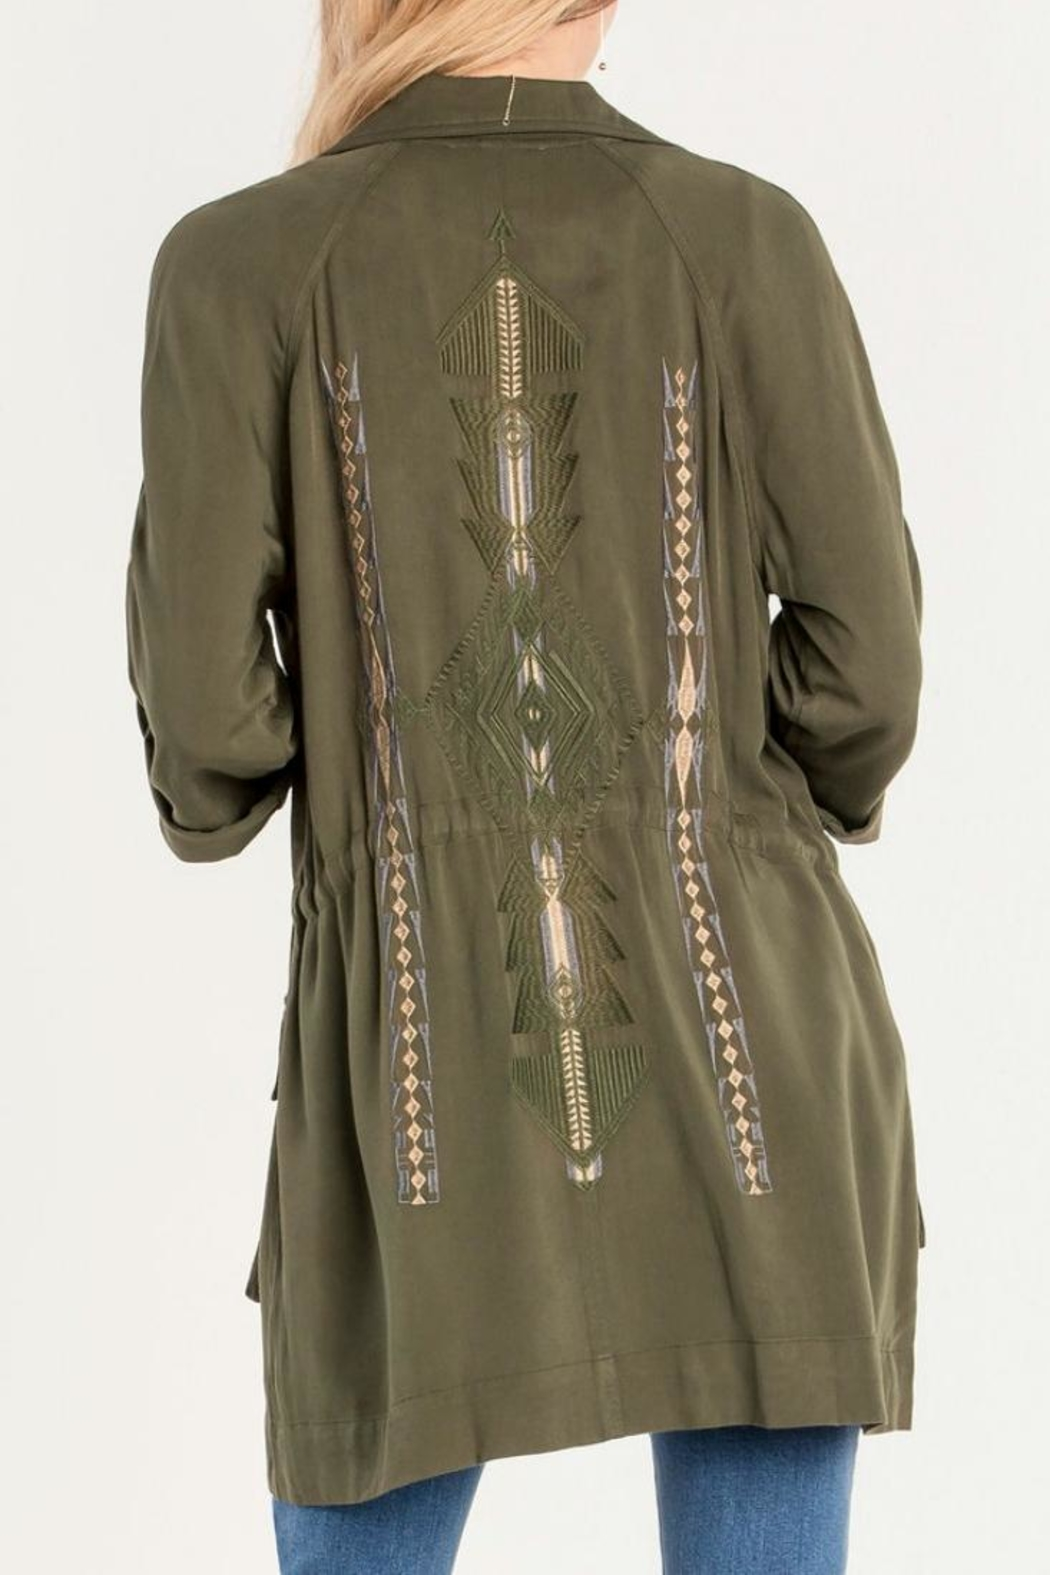 Miss Me Olive Embroidered Utility Jacket - Main Image